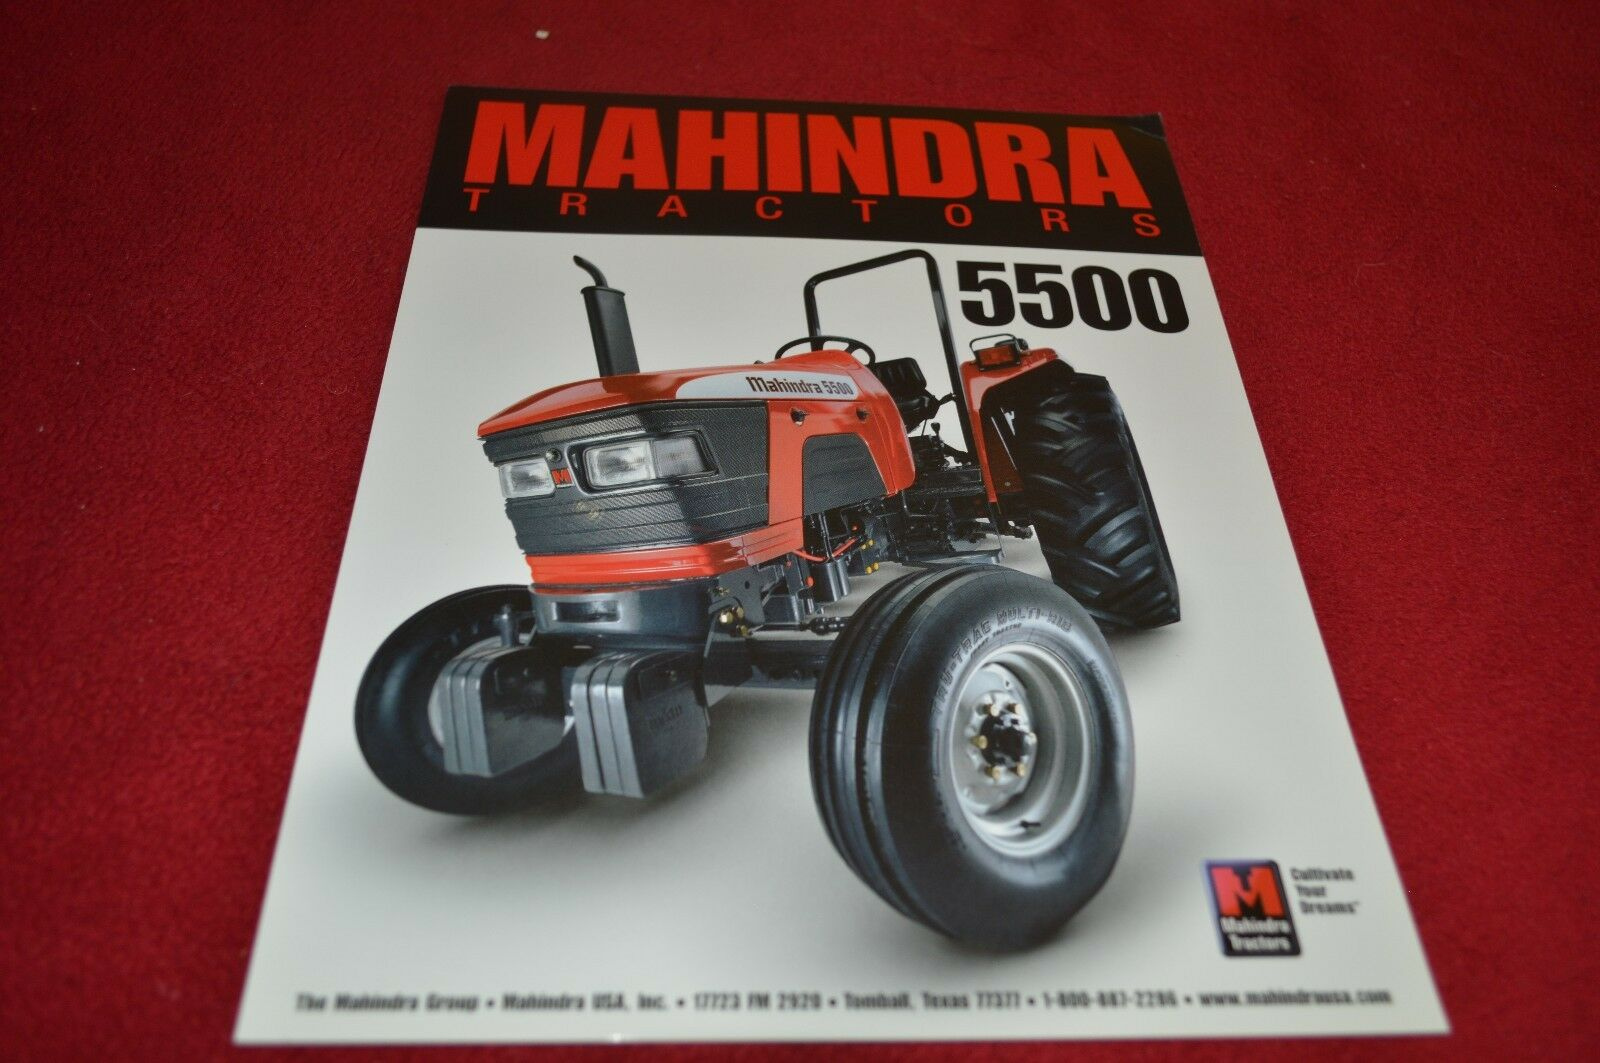 Mahindra 5500 Tractor Dealer's Brochure YABE12 1 of 1Only 1 available ...